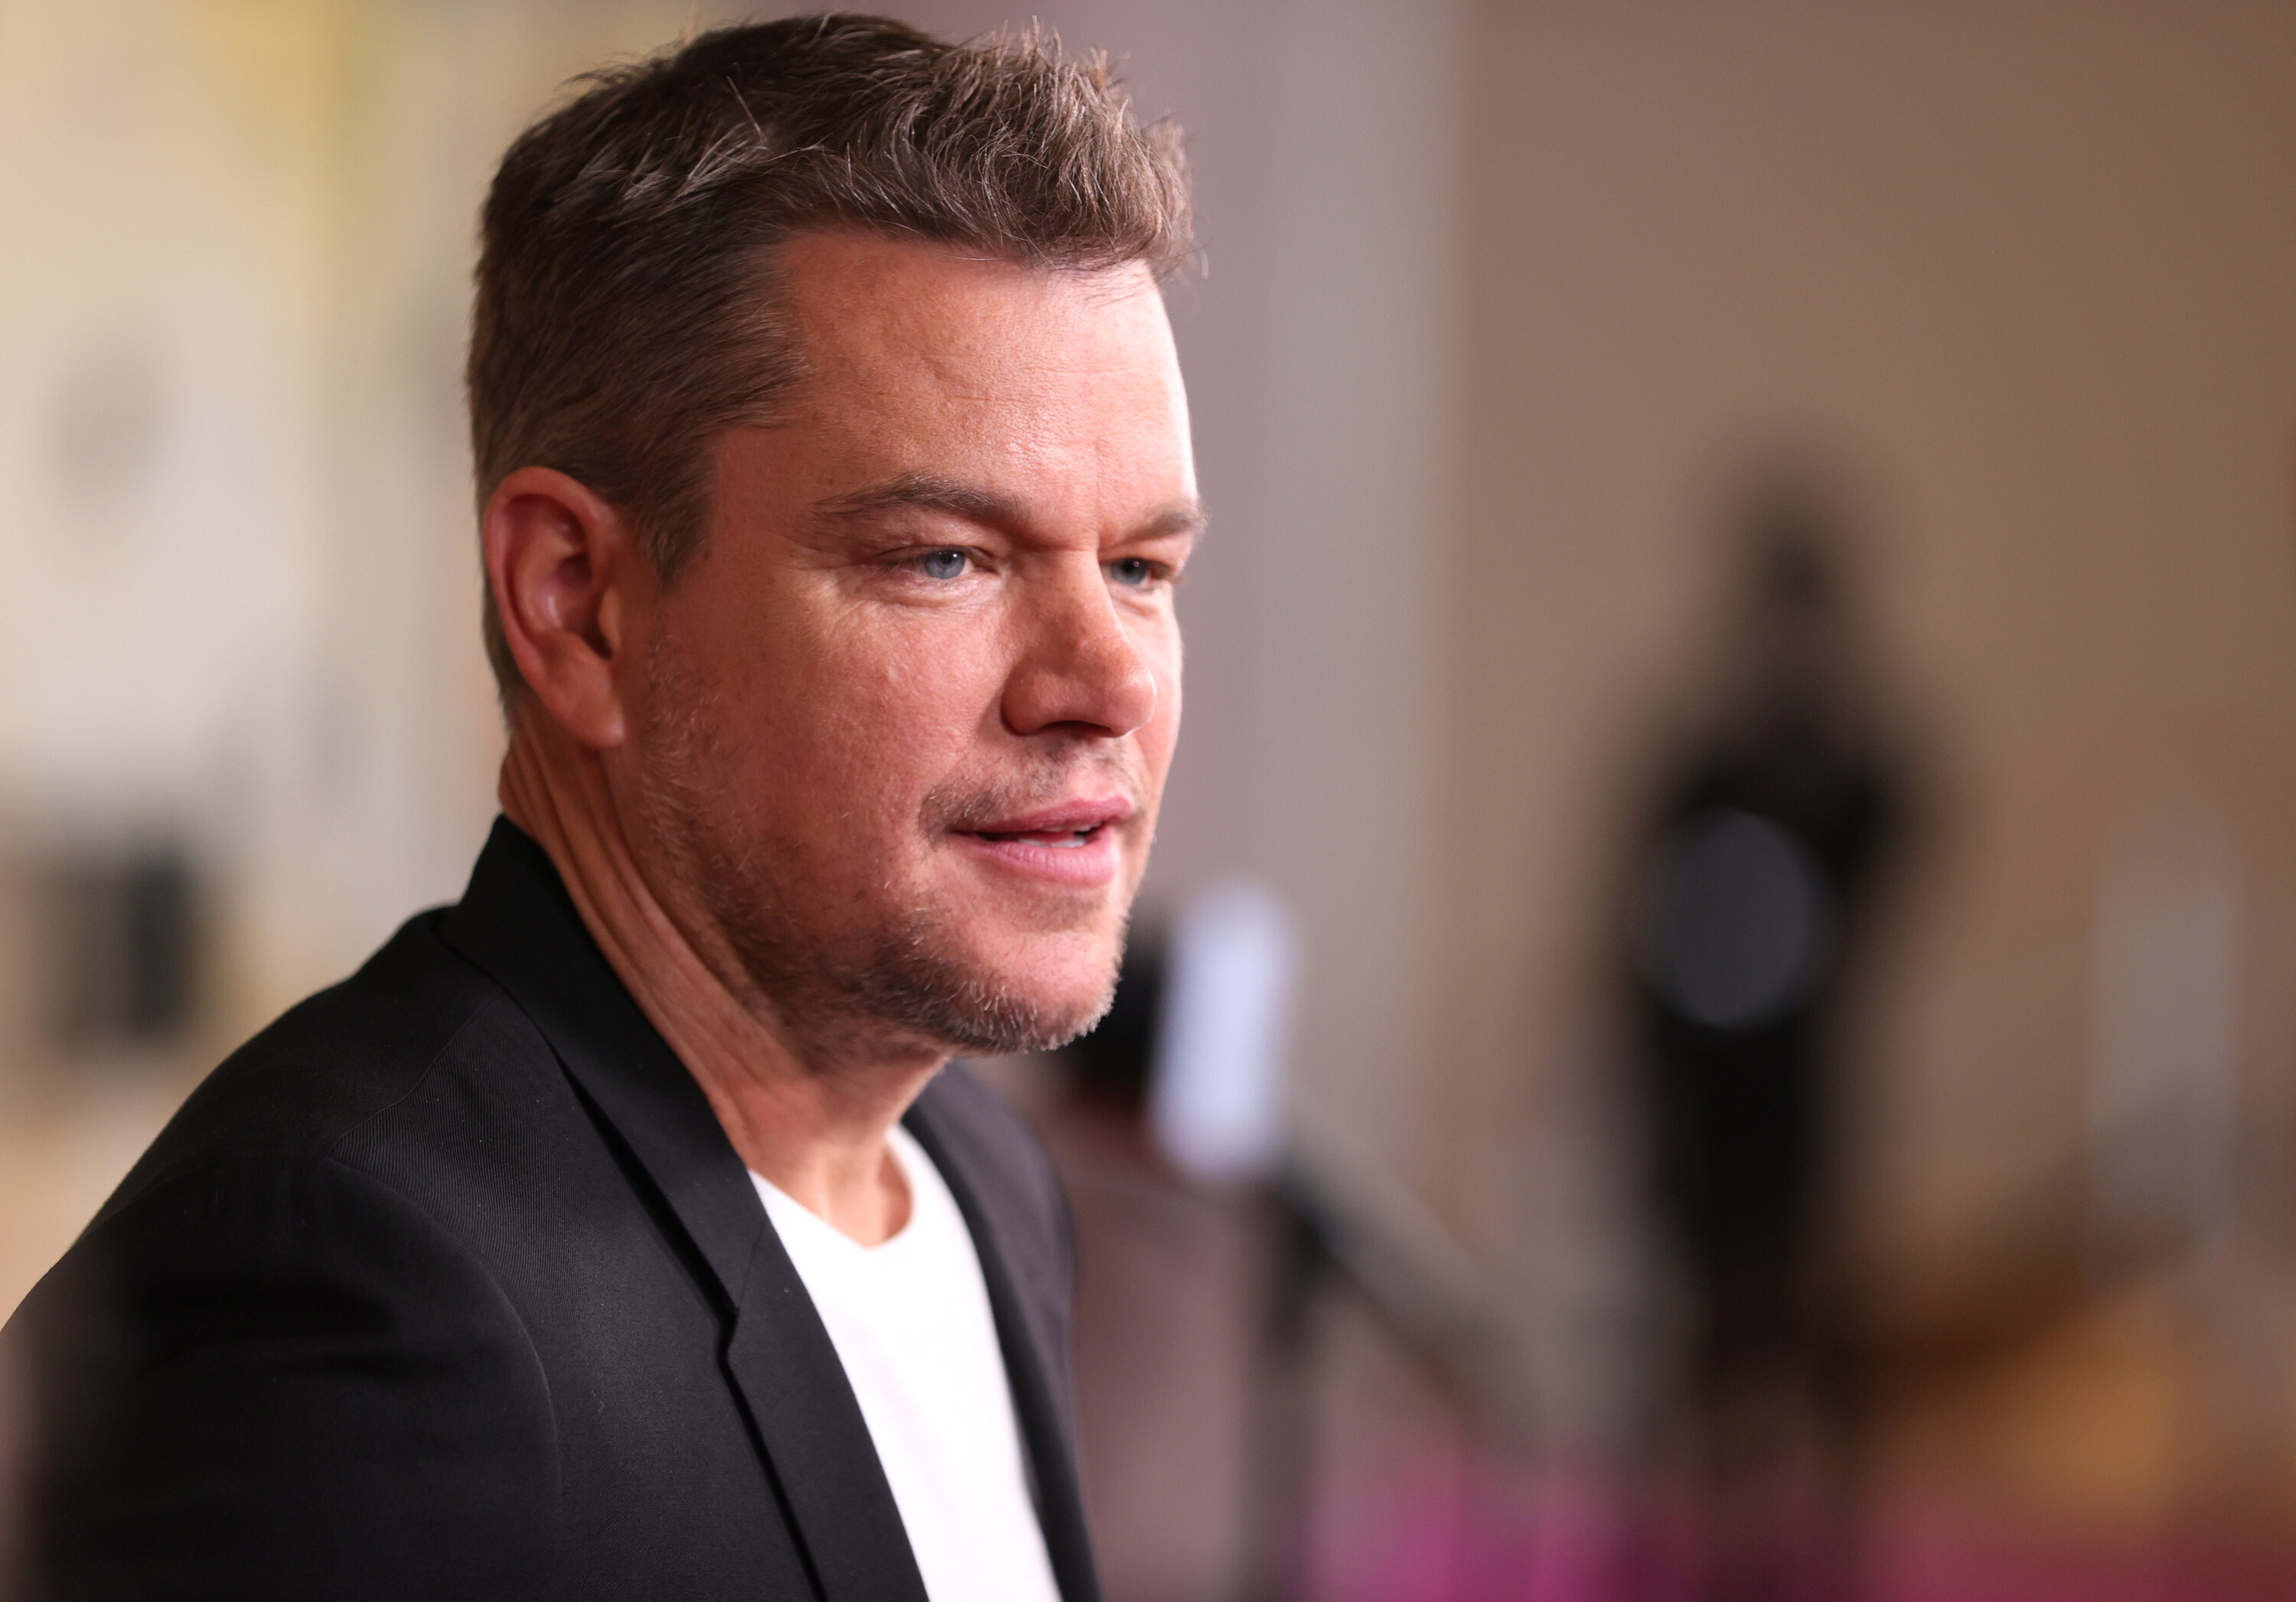 Matt Damon credits his daughter for ending his use of the 'f-slur'